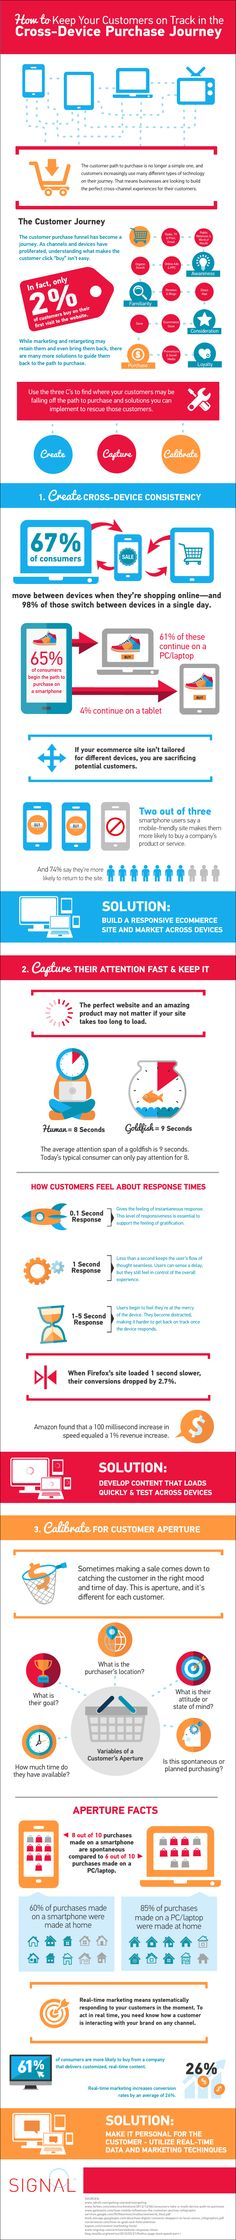 Infographic: How to keep customers on track in the cross-device purchase journey | MyCustomer